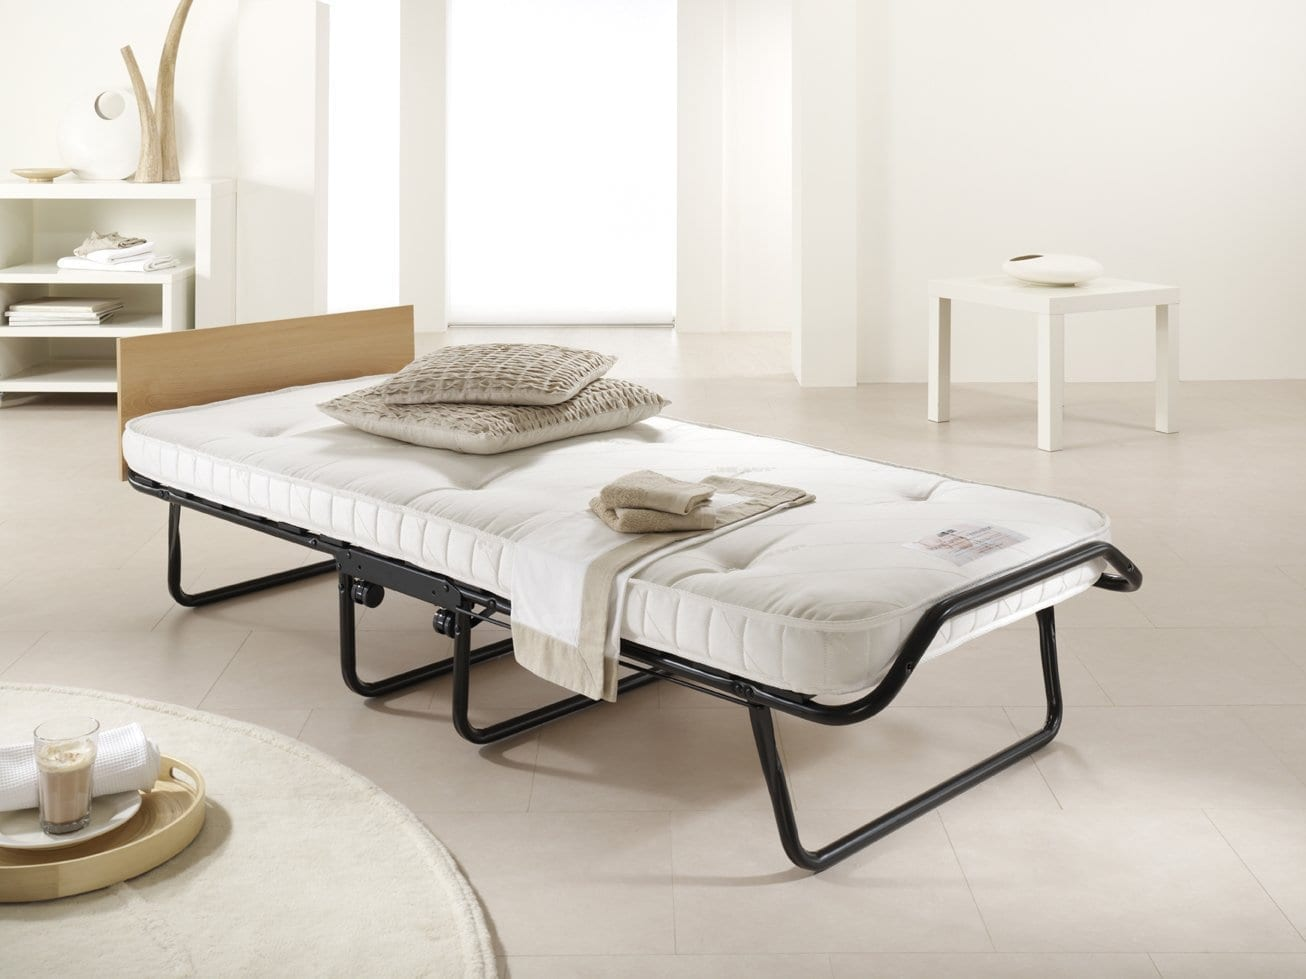 Kids Rollaway Bed Rollaway Bed Top Brands And Buying Guide For 2019 Snoremagazine